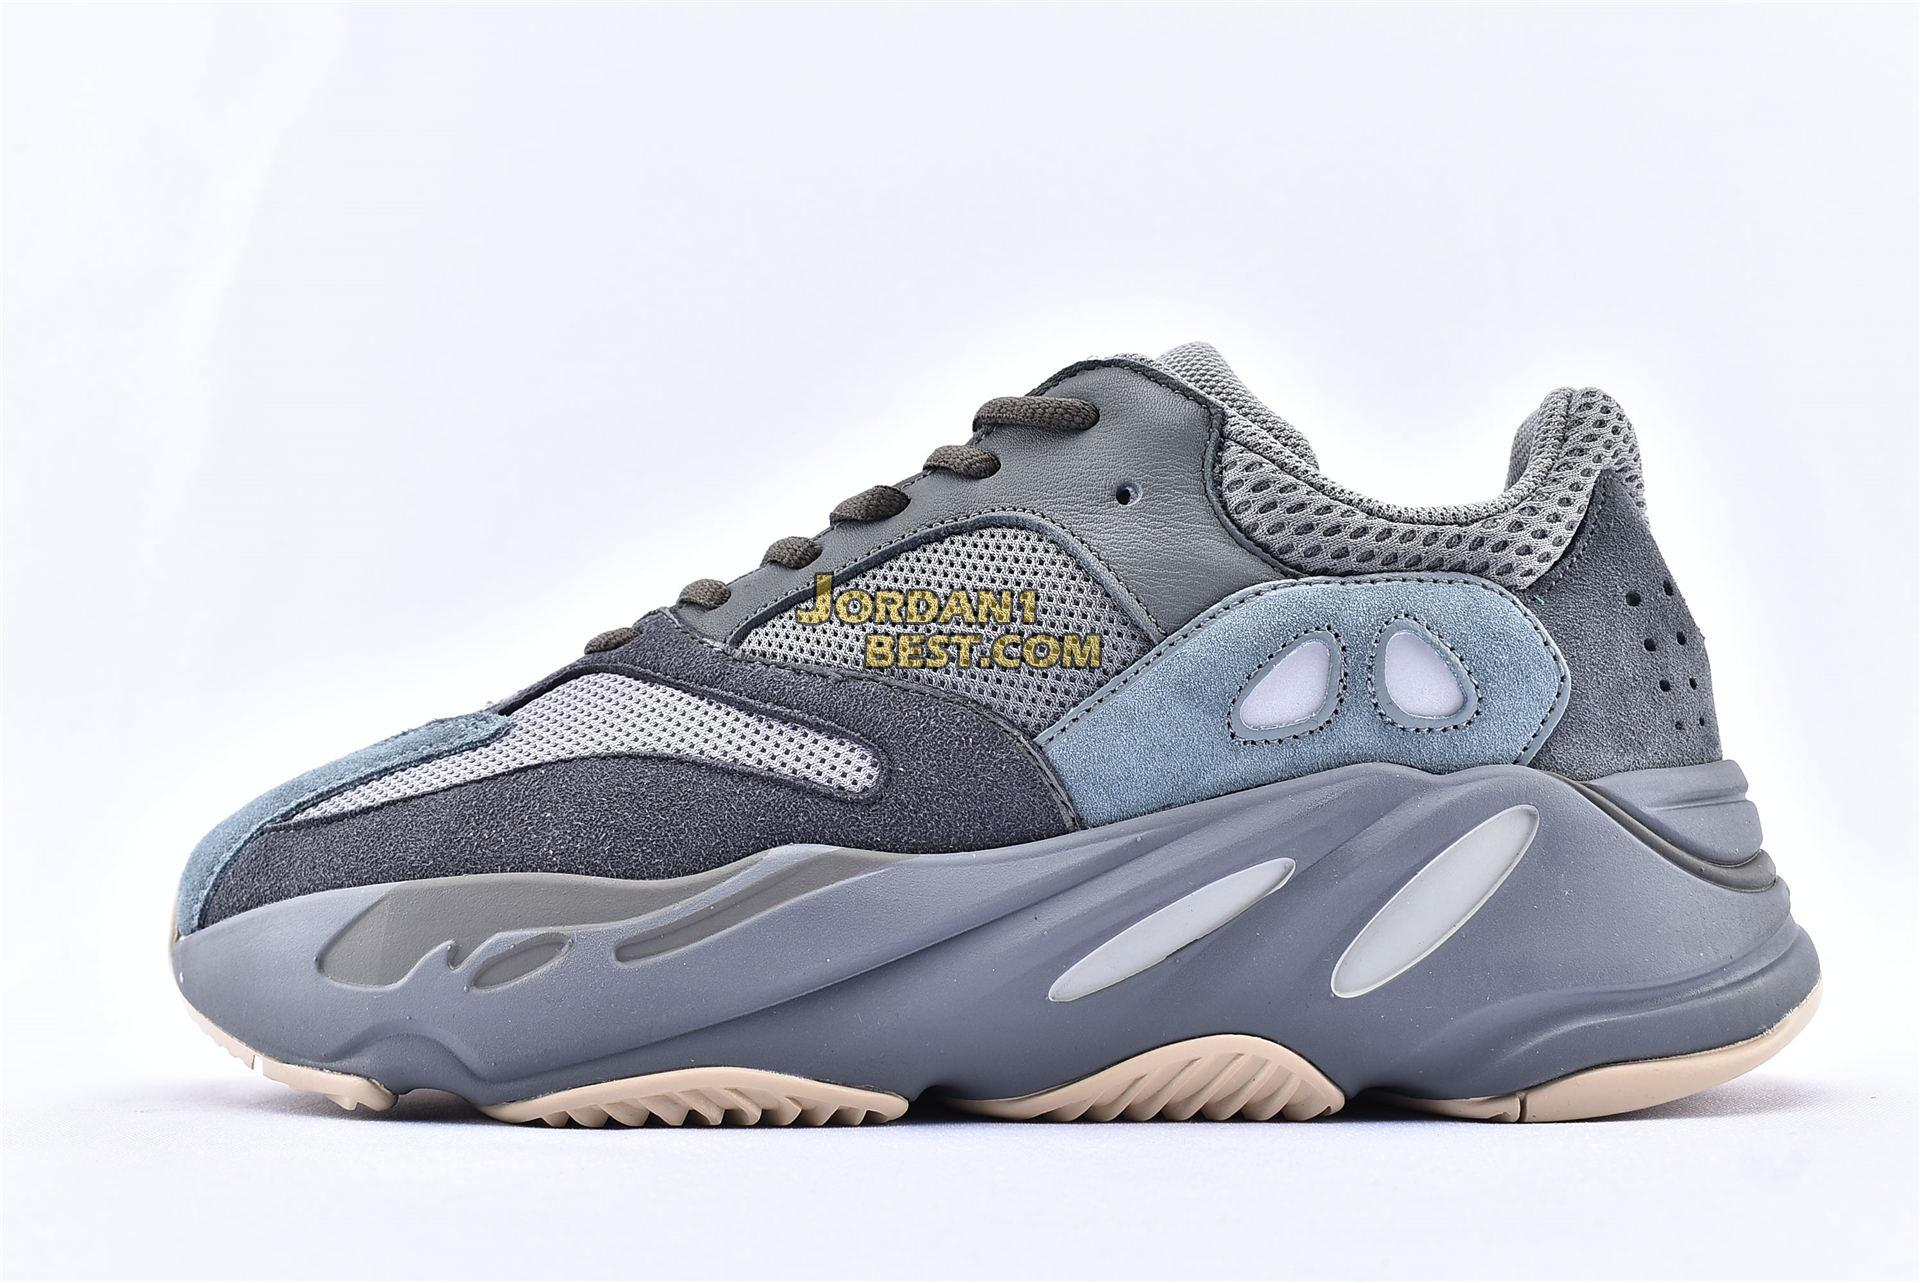 "best replicas Adidas Yeezy Boost 700 ""Teal Blue"" FW2499 Teal Blue/Teal Blue-Teal Blue Mens Womens Unisex Shoes replicas On Sale Wholesale"